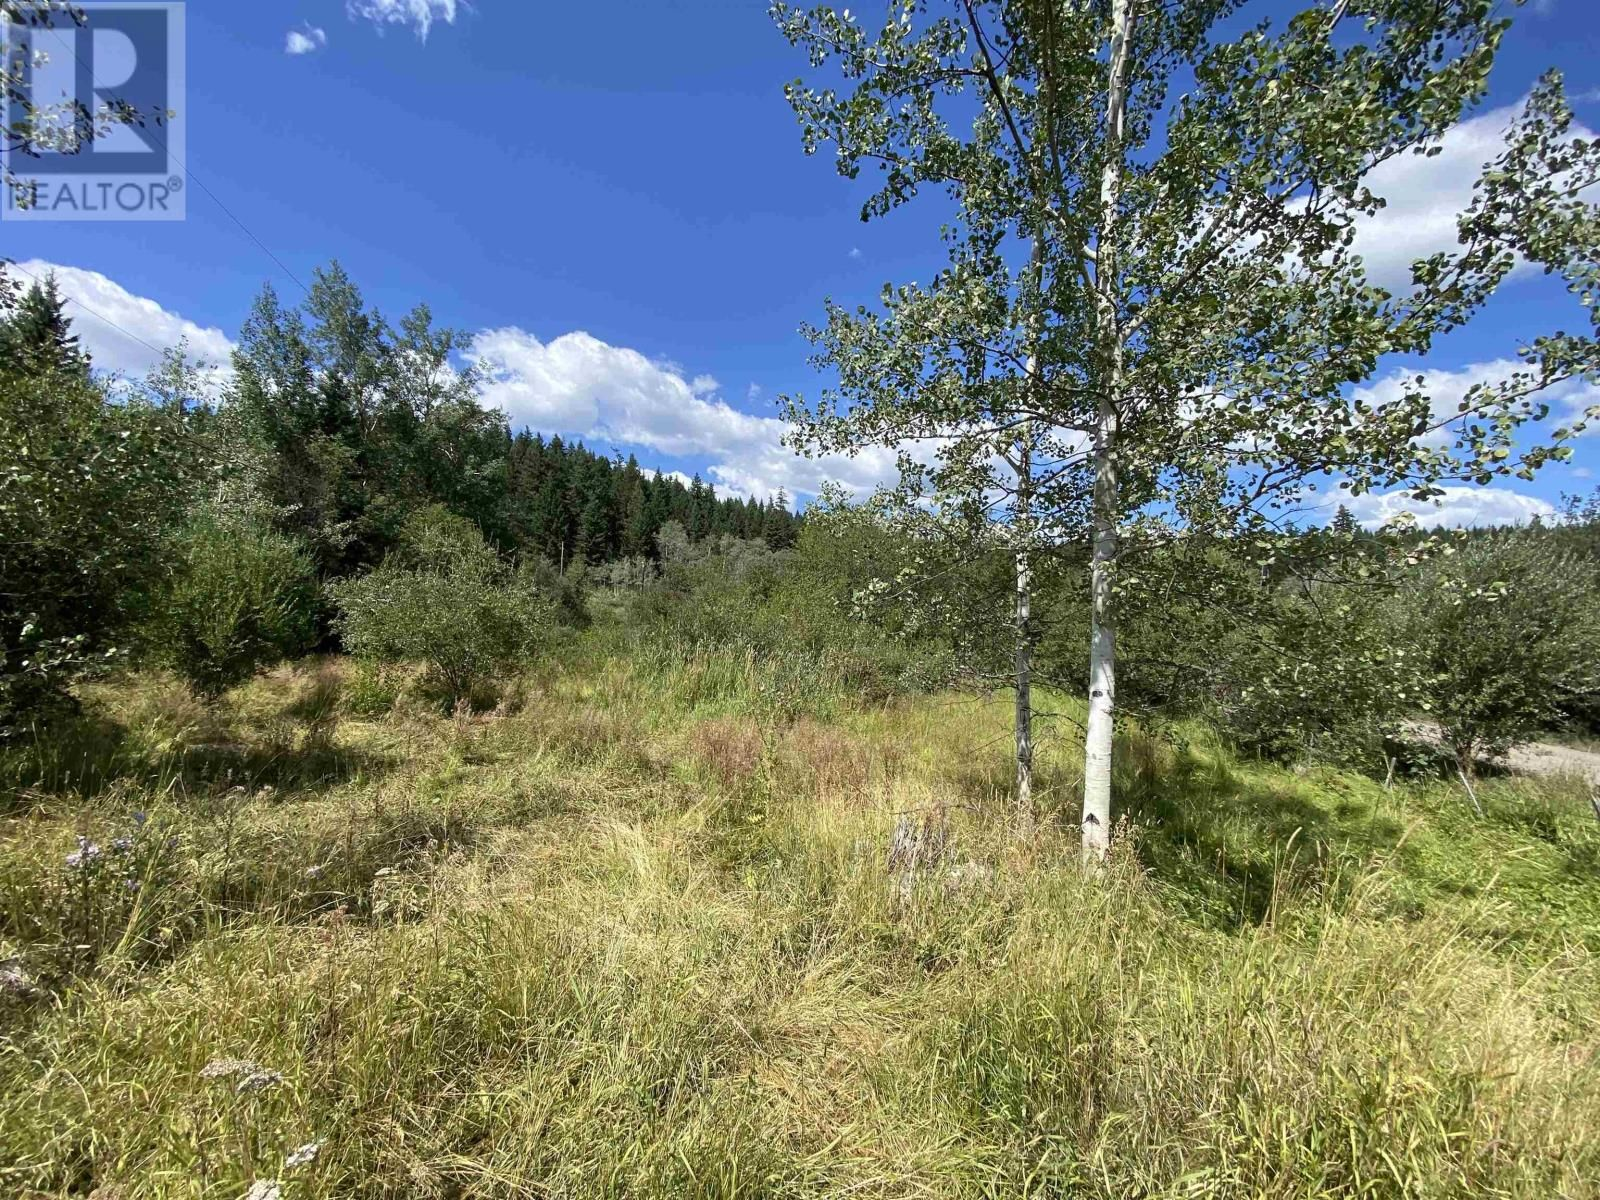 Main Photo: DL2350 TIMOTHY LAKE ROAD in Lac La Hache: Vacant Land for sale : MLS®# R2610977